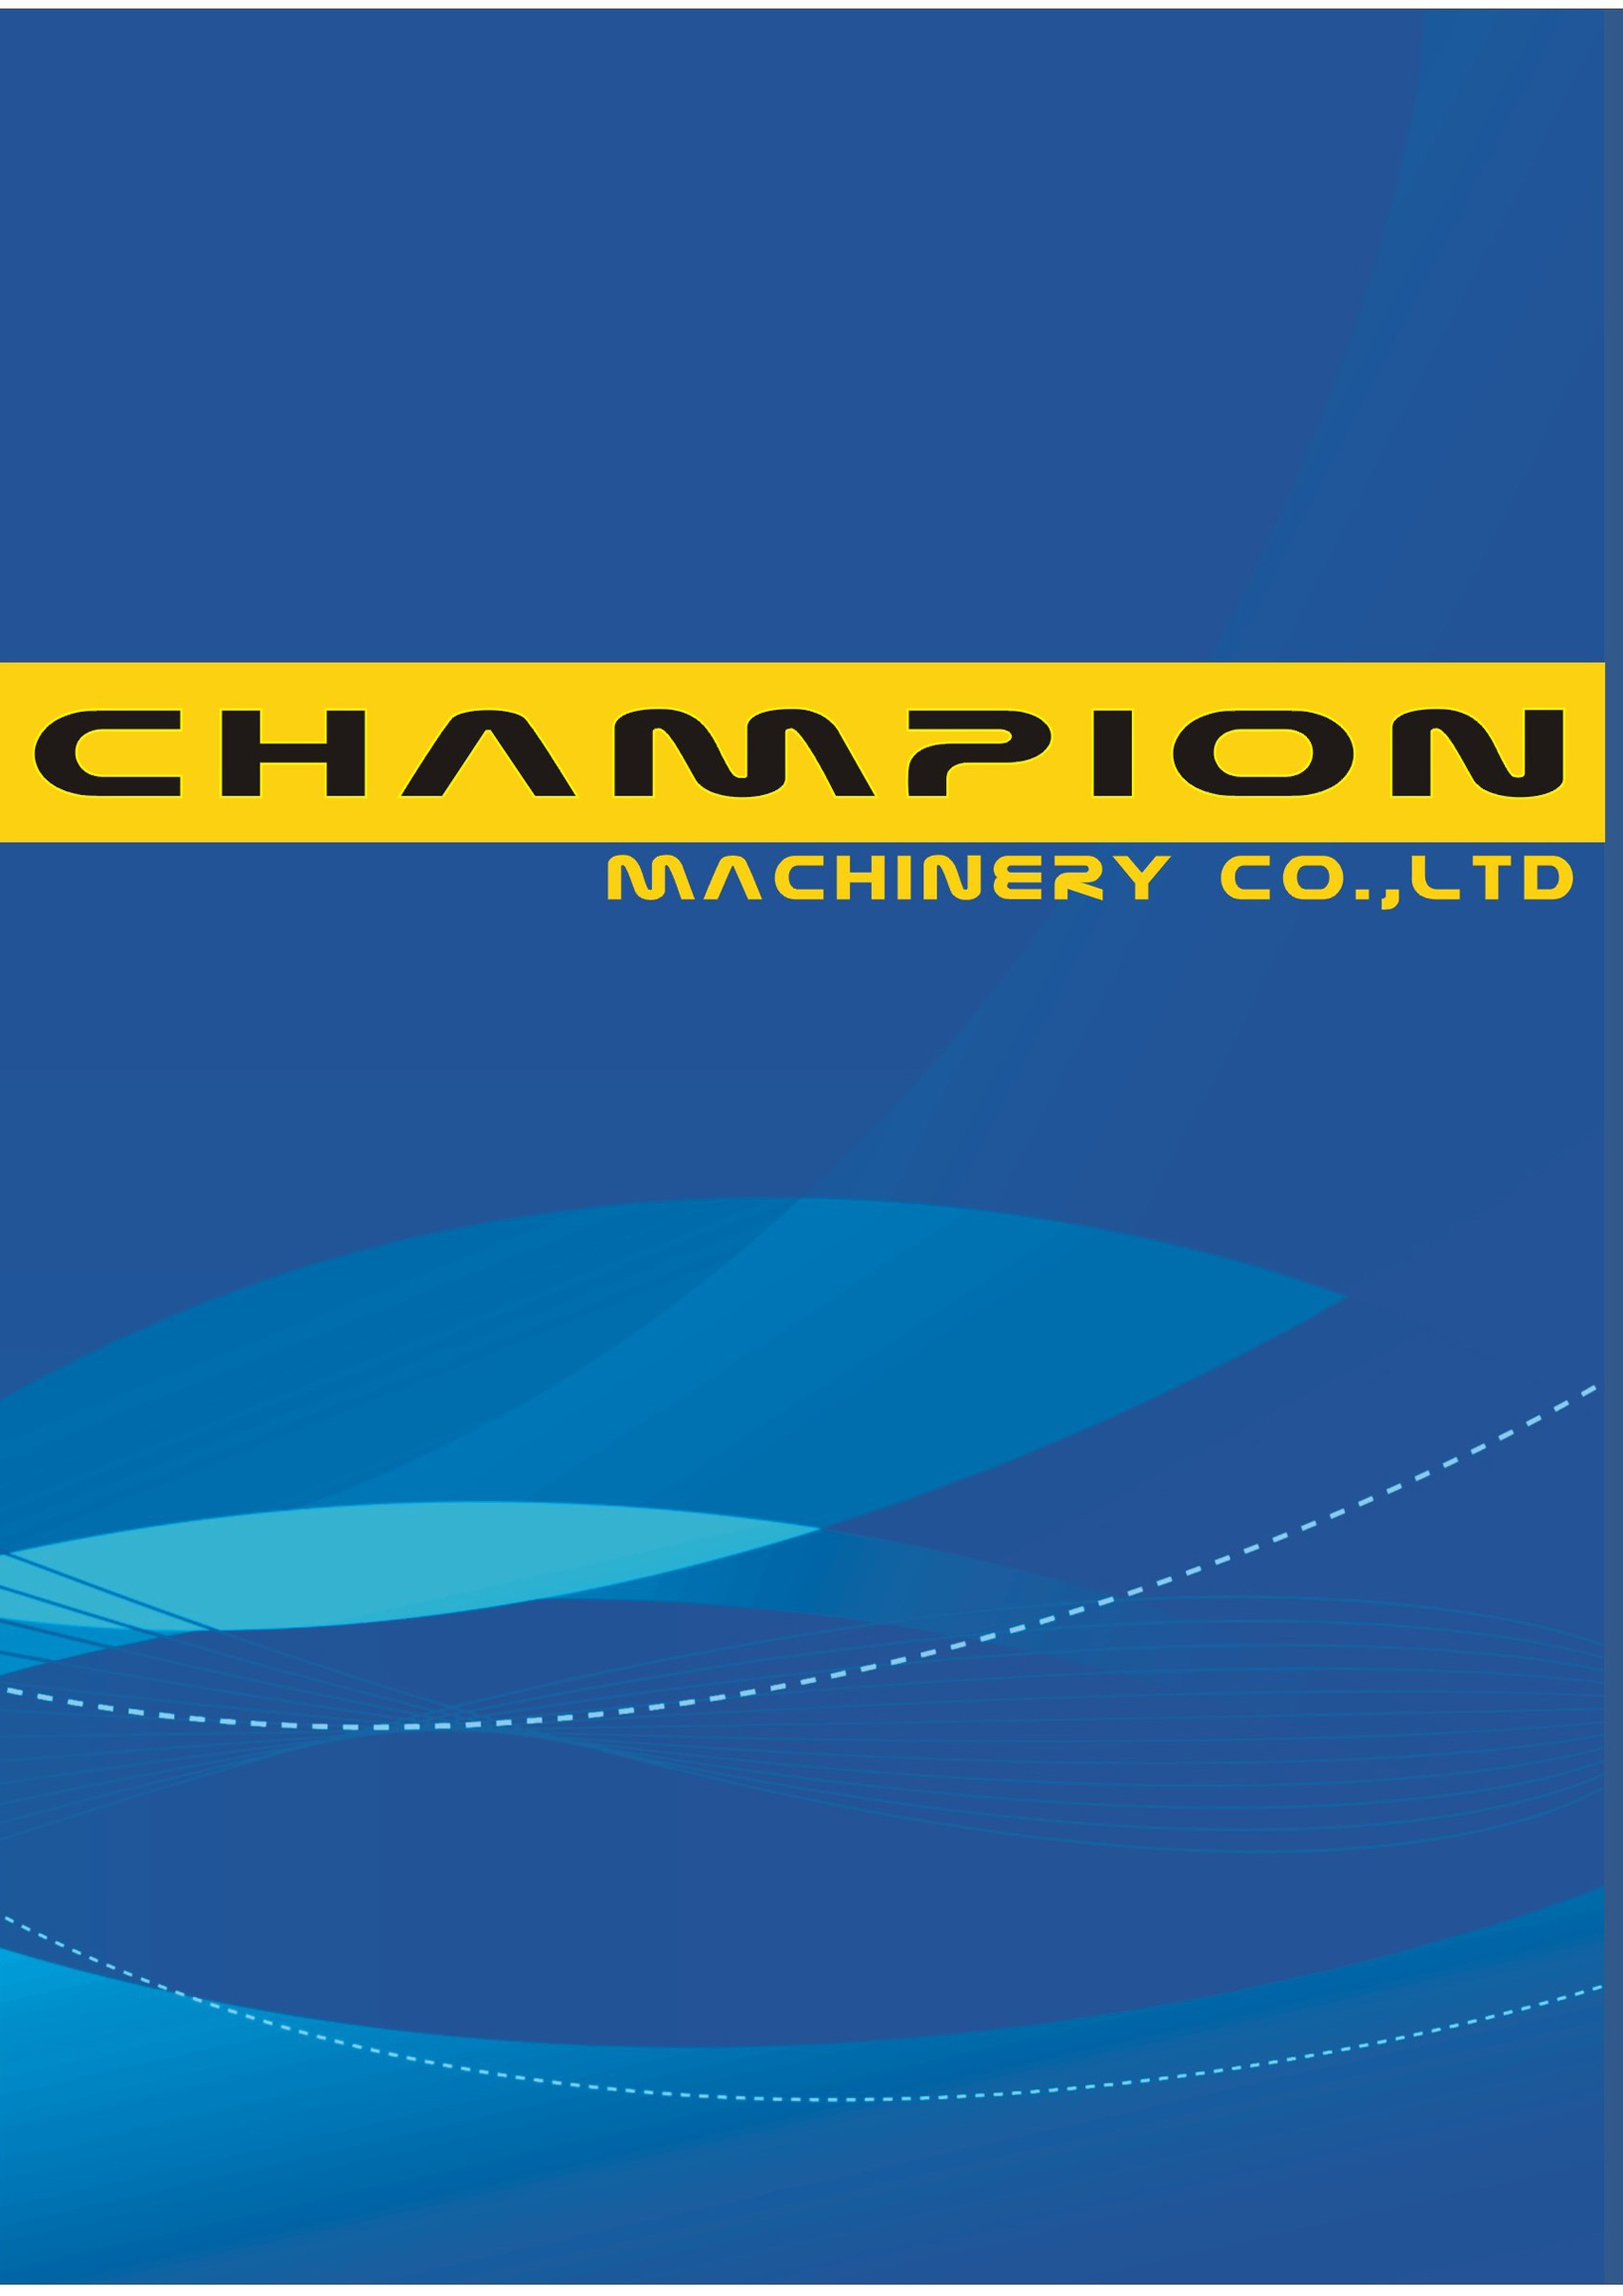 Exhibition Stand Plan : Catalouge download champion machinery co ltd